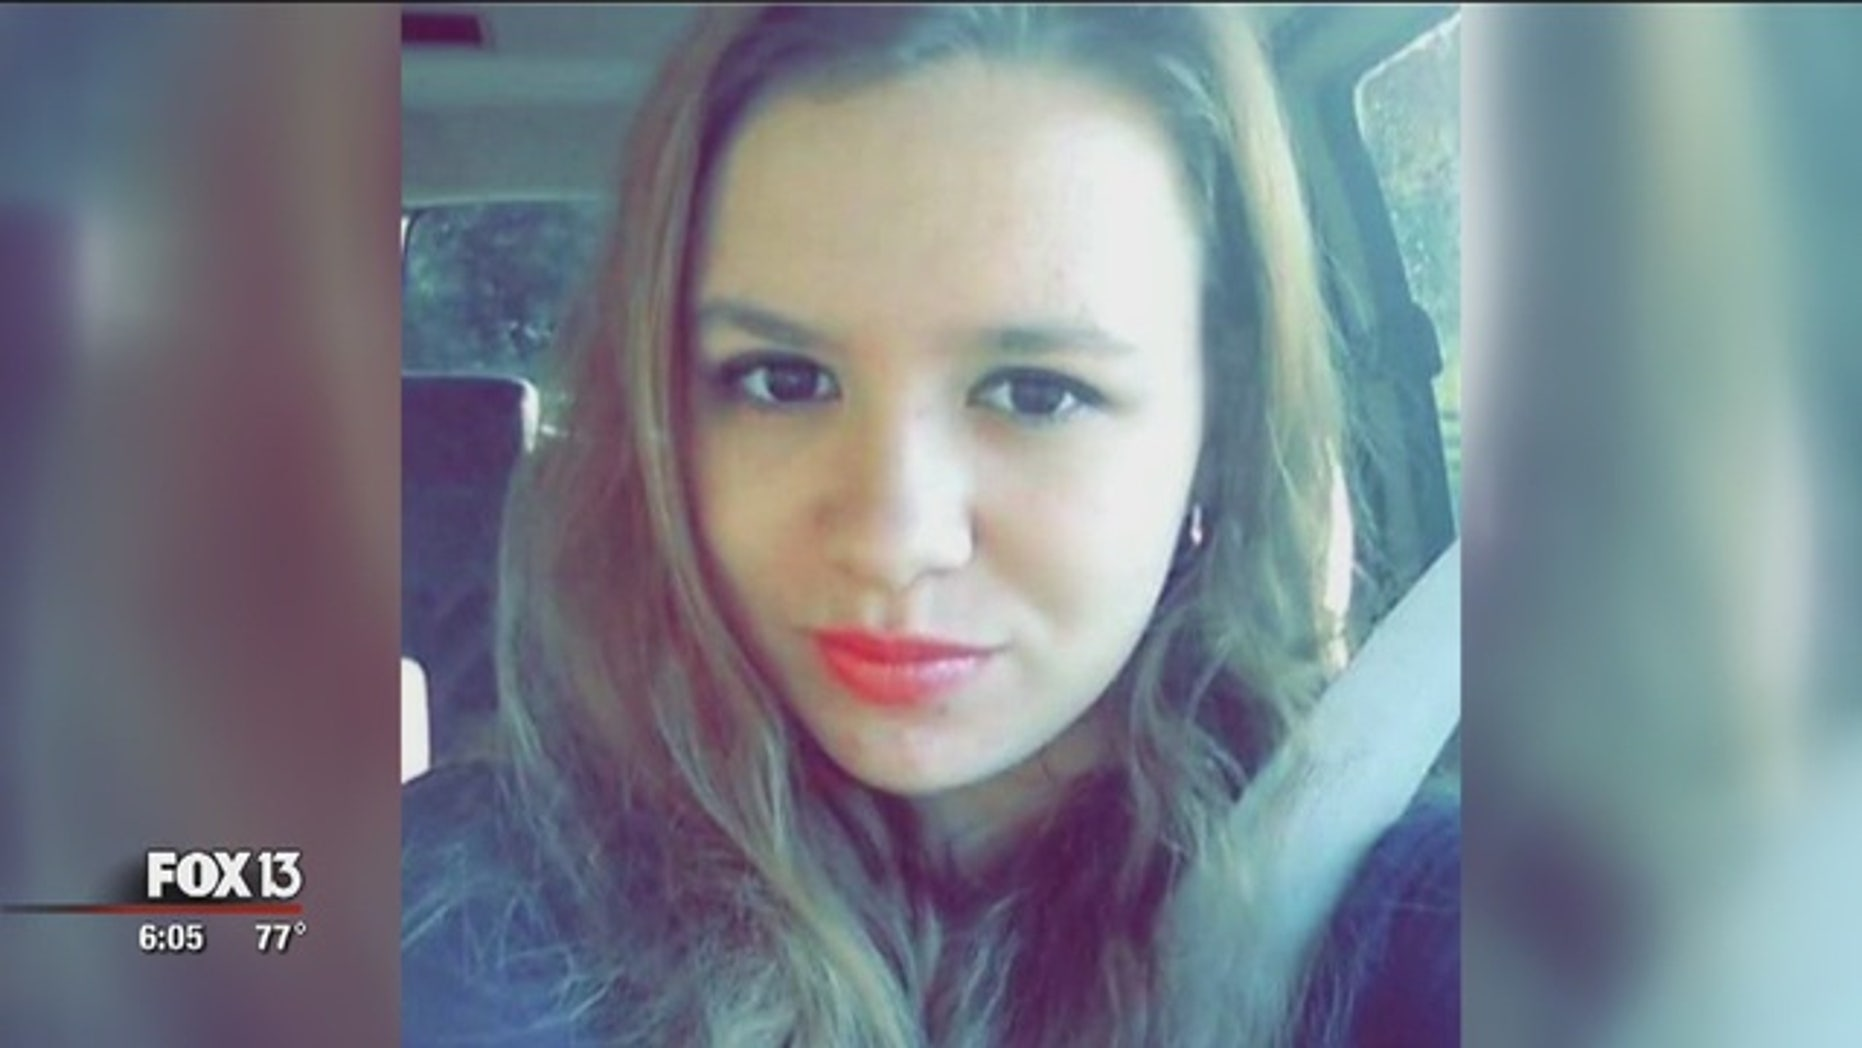 Angelina Holloway's death is now the focus of an anti-texting and driving campaign in Florida.